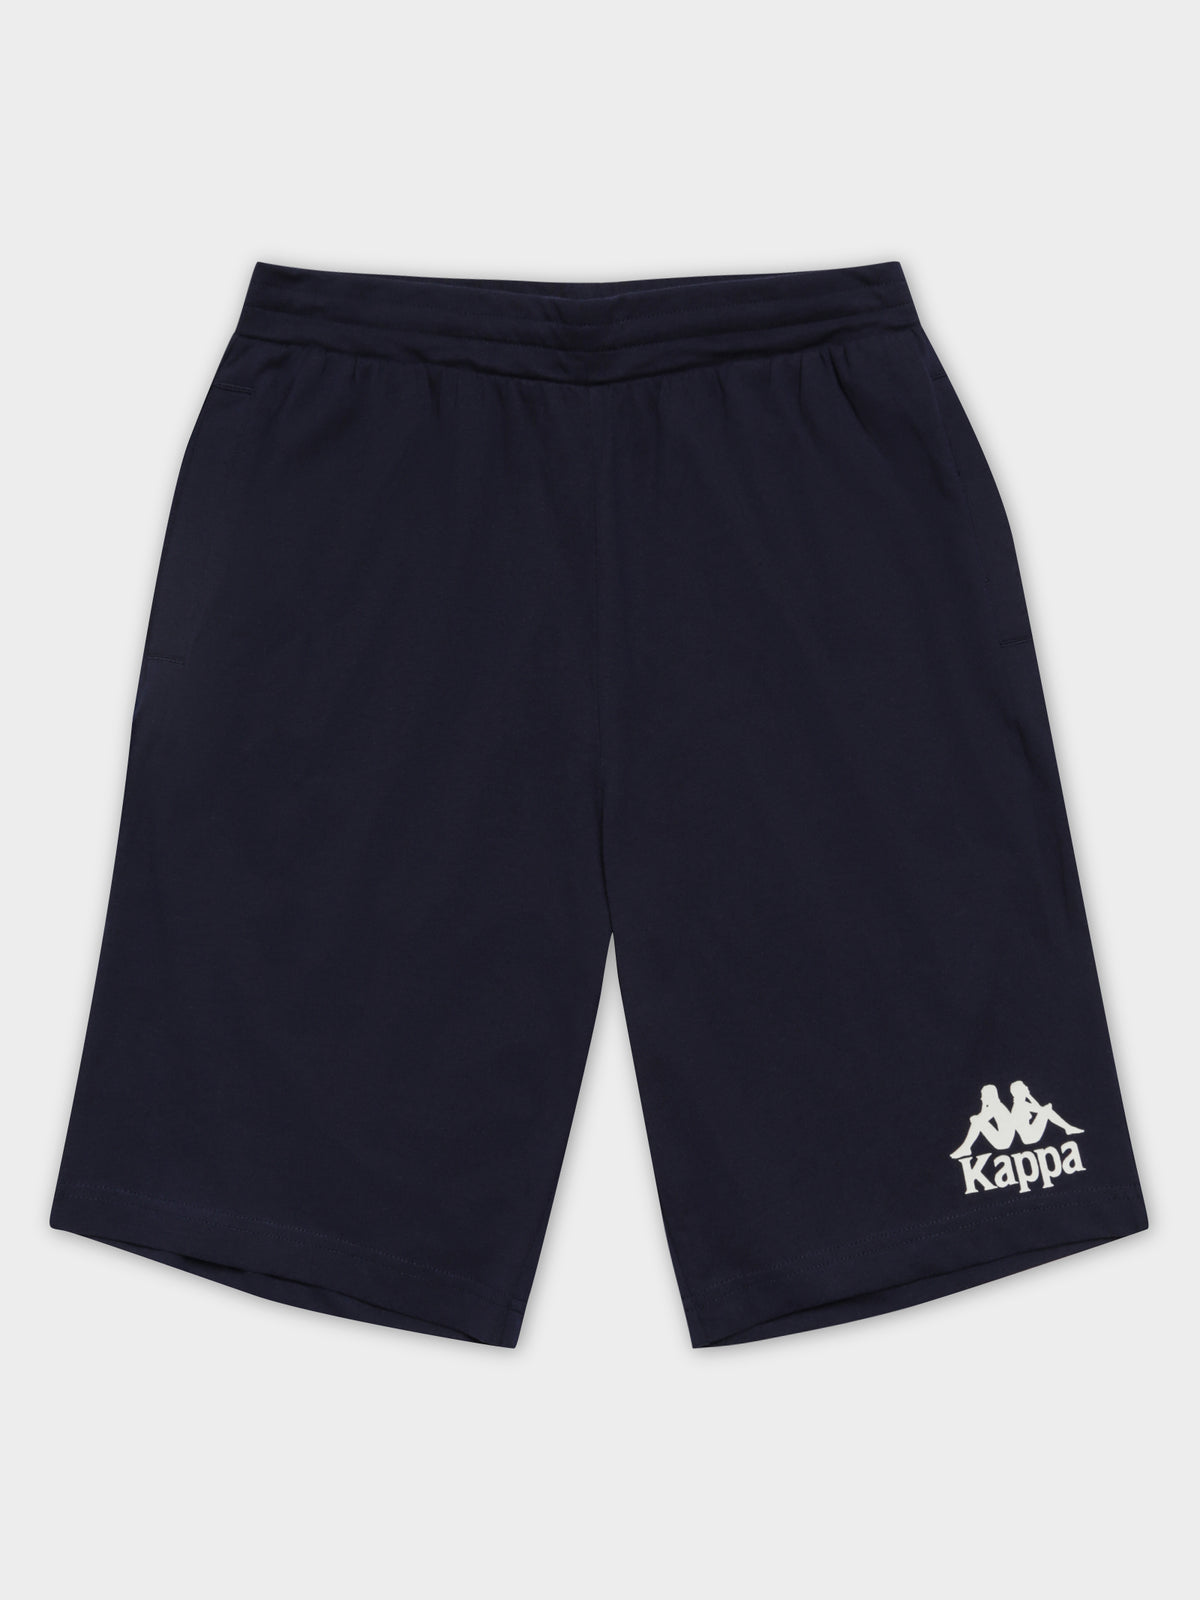 Authentic Resh Shorts in Blue Marine